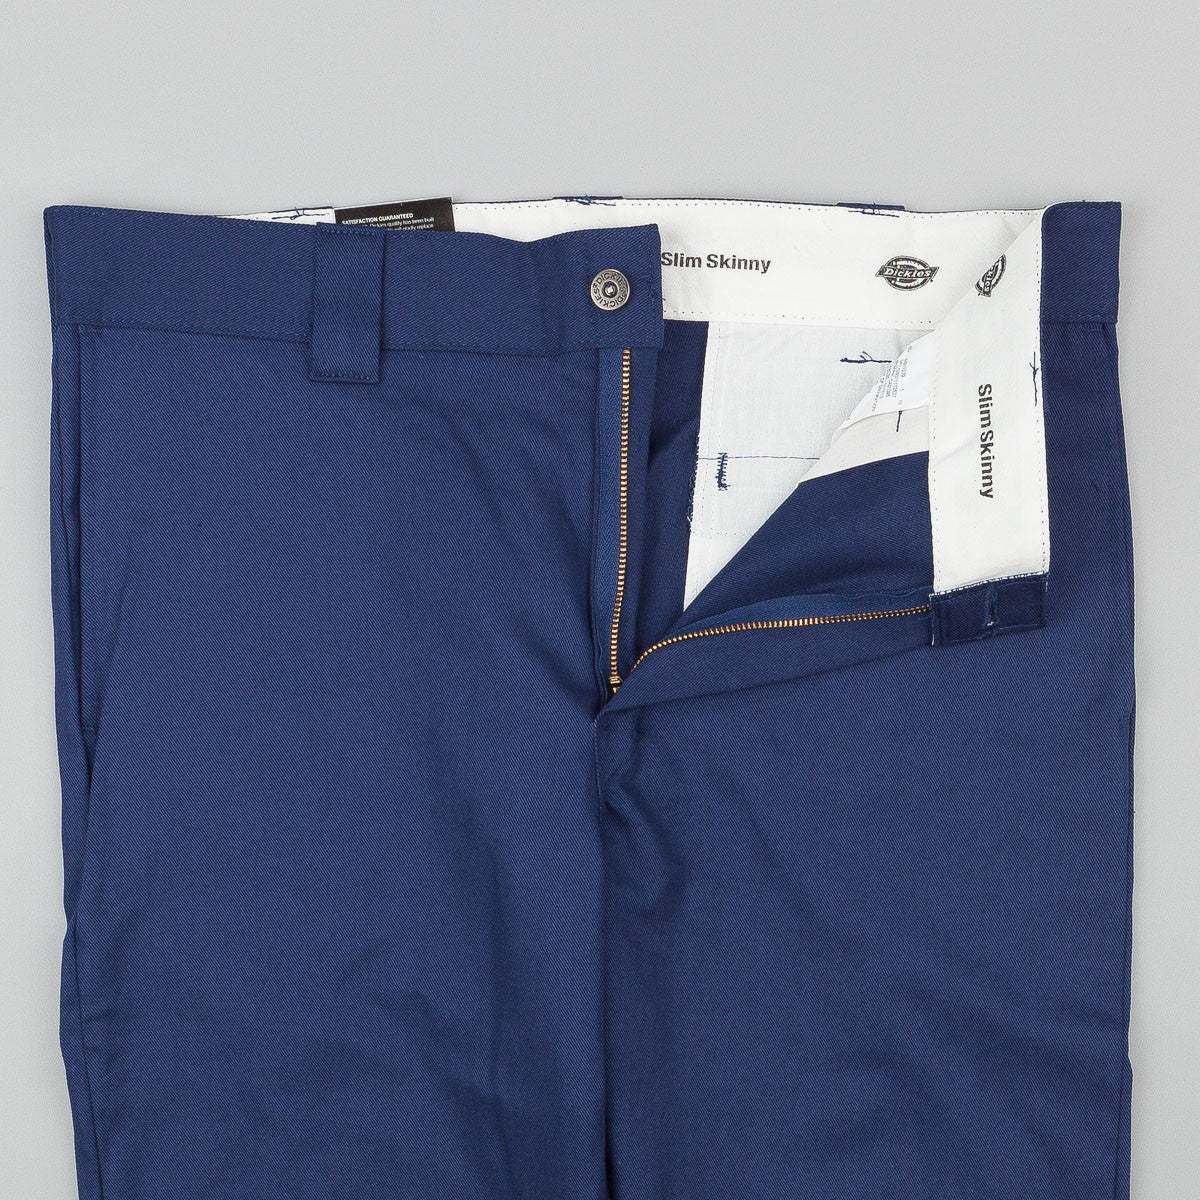 Dickies 803 Slim Skinny Work Trousers - Deep Blue